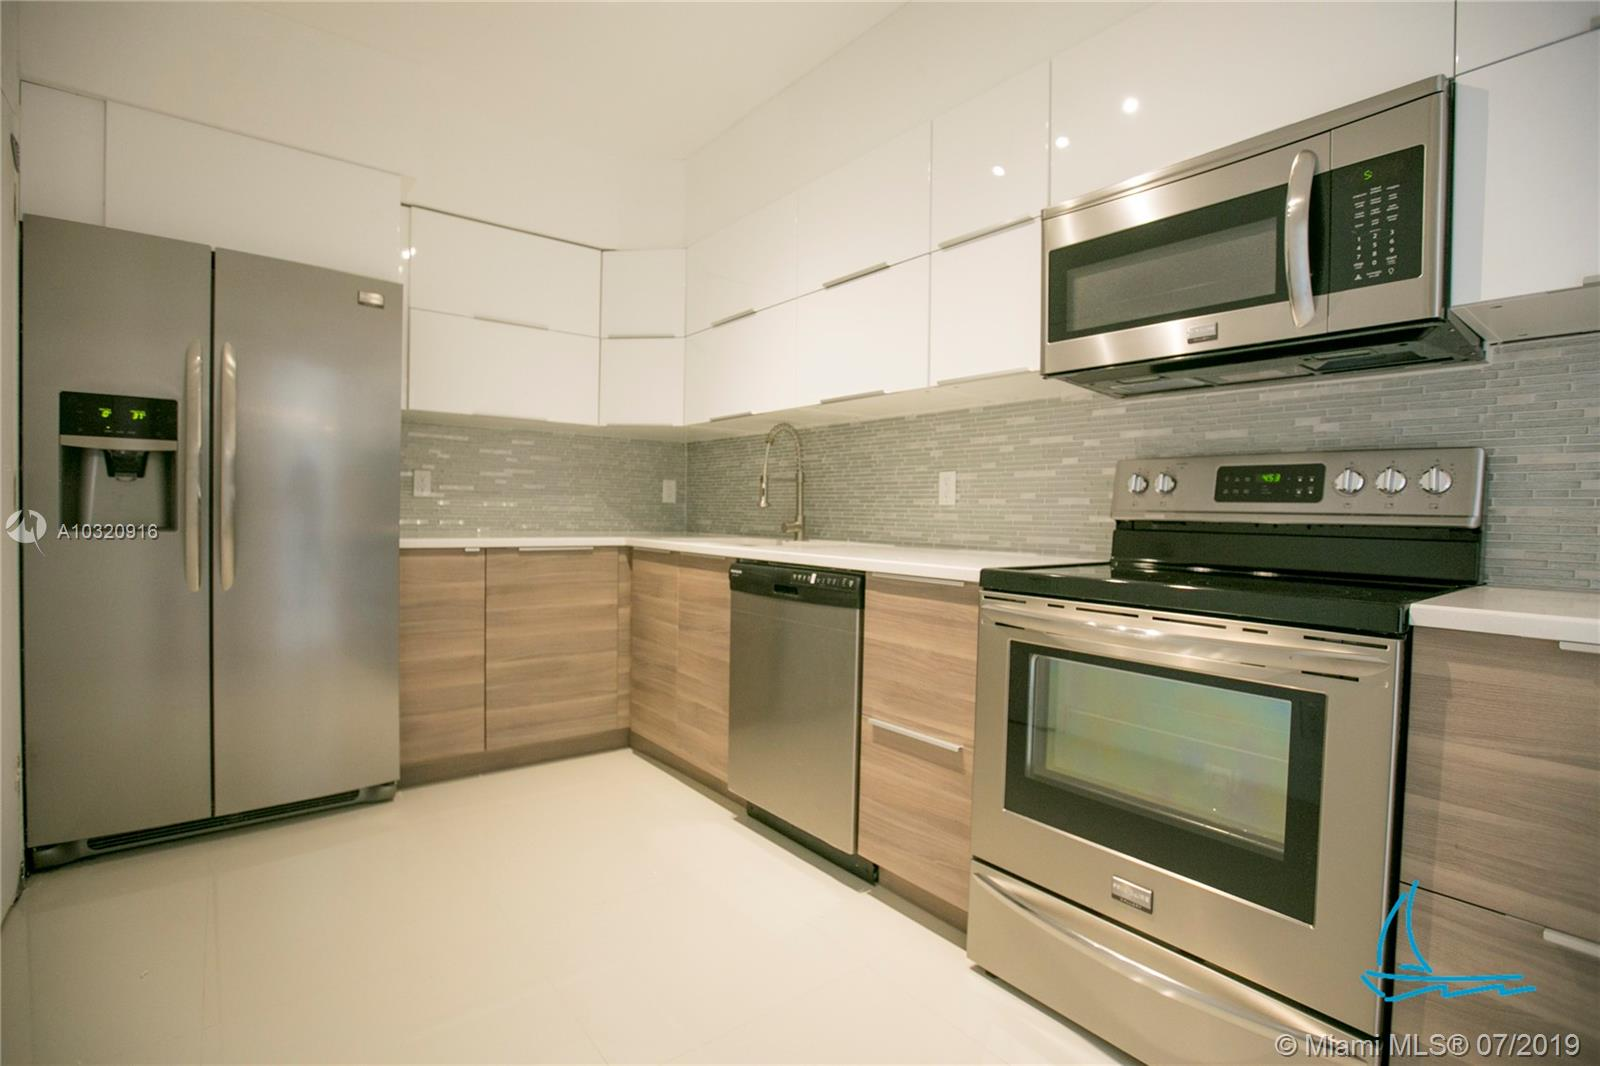 Beautiful and completely updated 1 bedroom, 1.5 bath condo in Bay Harbor Islands! Large 24' white porcelain floors throughout, newer kitchen and bathrooms, new lighting, and more! Condo unit has an open floor plan with huge living room. Spacious kitchen with white cabinets and stainless steel appliances. Large bedroom has an en suite bathroom with double sink and walk-in closet. Building is along the canal and features BBQ area, pool overlooking the water with beautiful views, party room and more! Close to Bal Harbour shops, beaches, restaurants, grocery stores, and more! A must see.